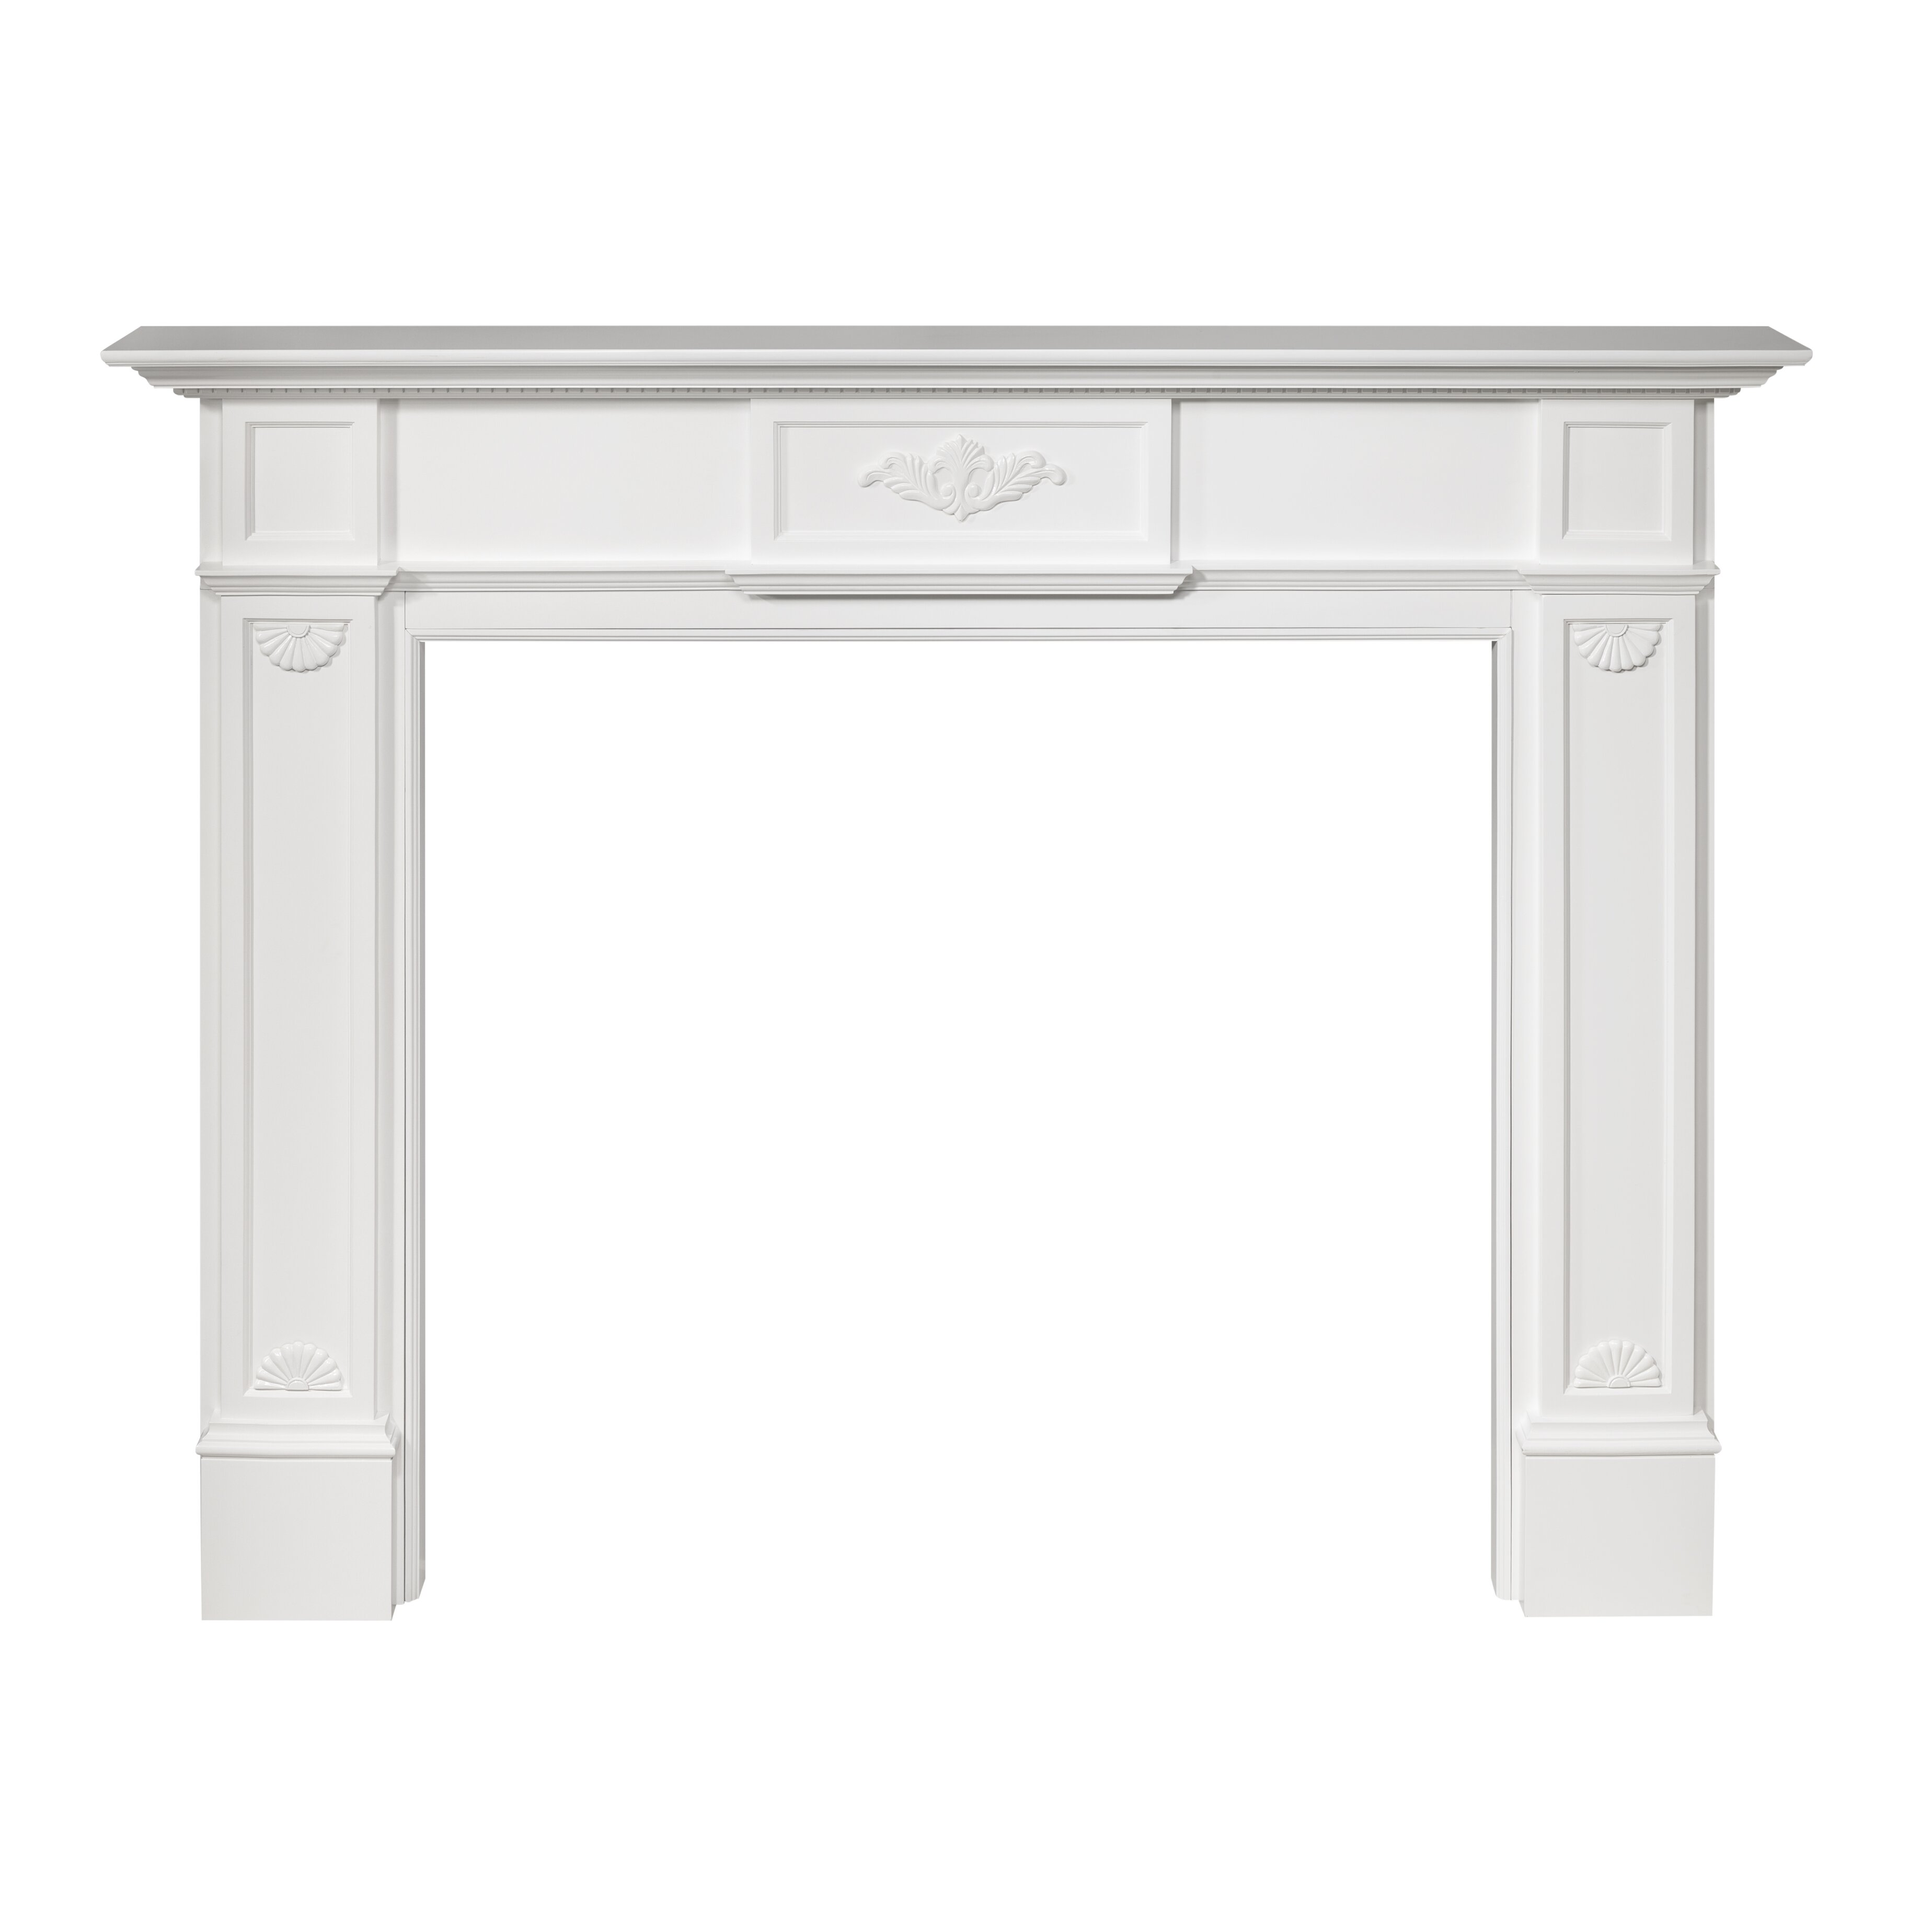 Pearl Mantels 56quot Monticello Fireplace Mantel Surround  : Pearl Mantels 56 Monticello Fireplace Mantel Surround 530 56 from www.wayfair.com size 3696 x 3696 jpeg 424kB